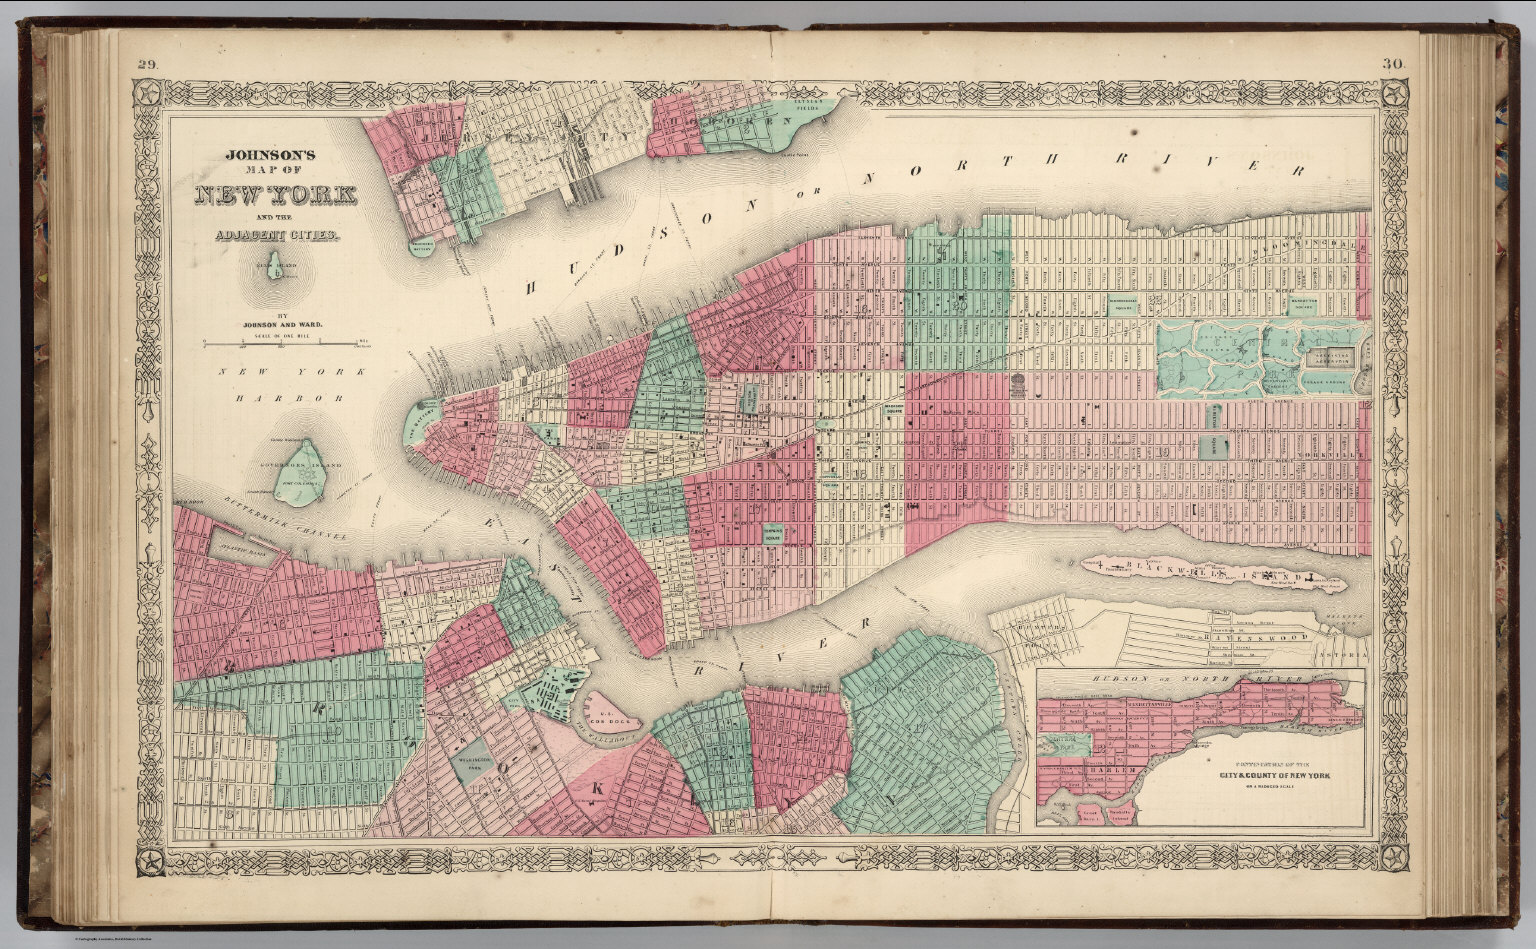 New York City David Rumsey Historical Map Collection - Nyc map to print